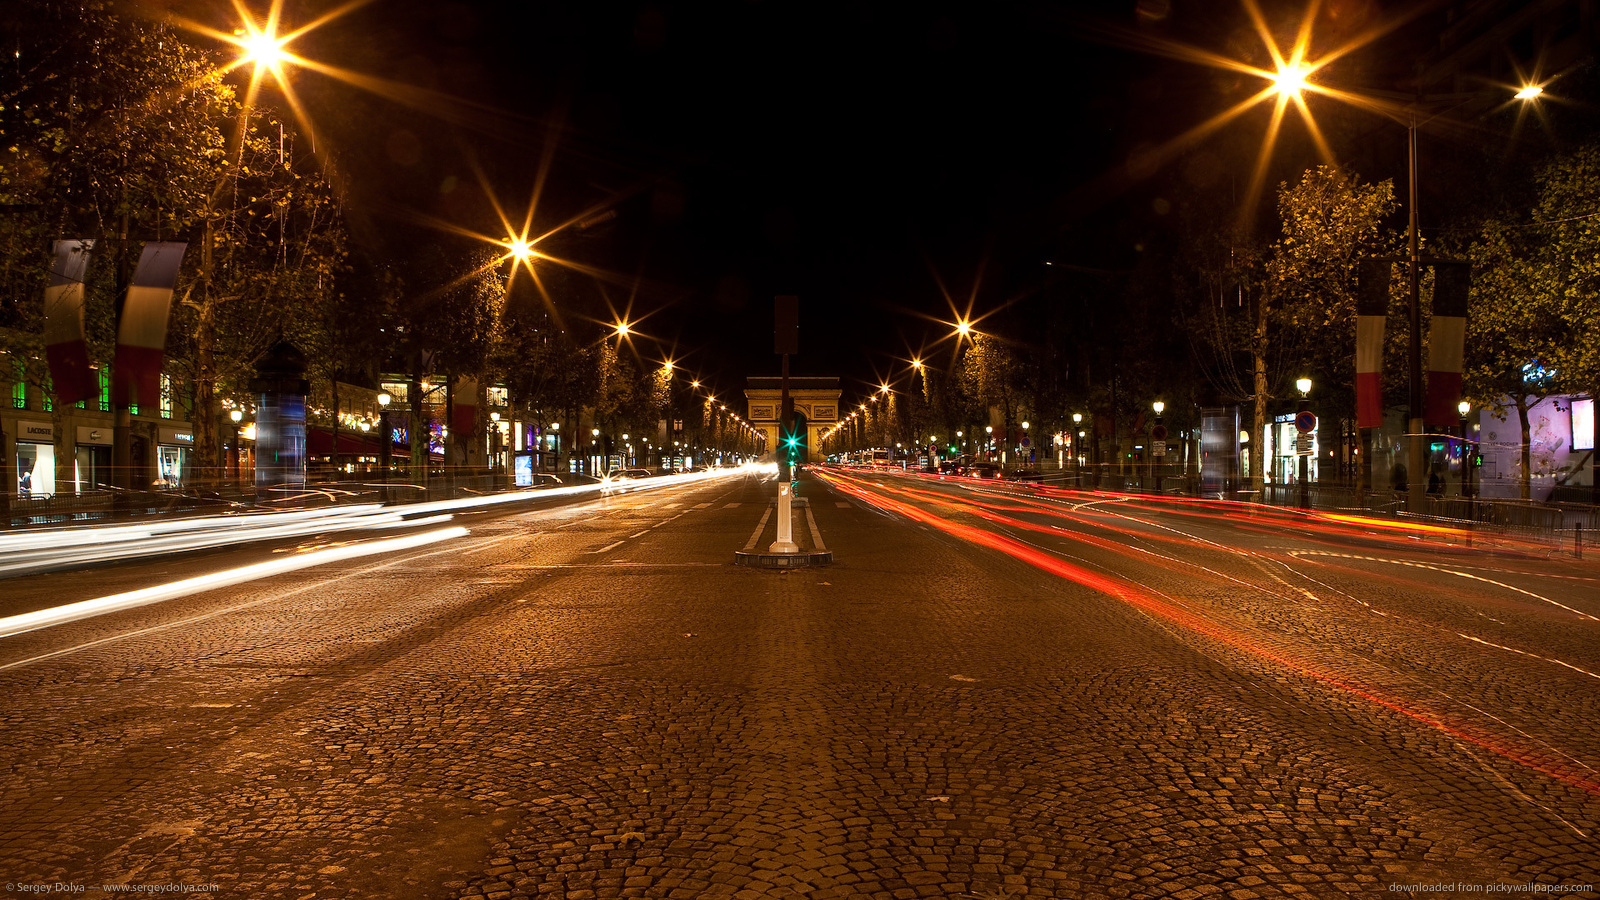 night-road-in-paris copy - edge3 technologies